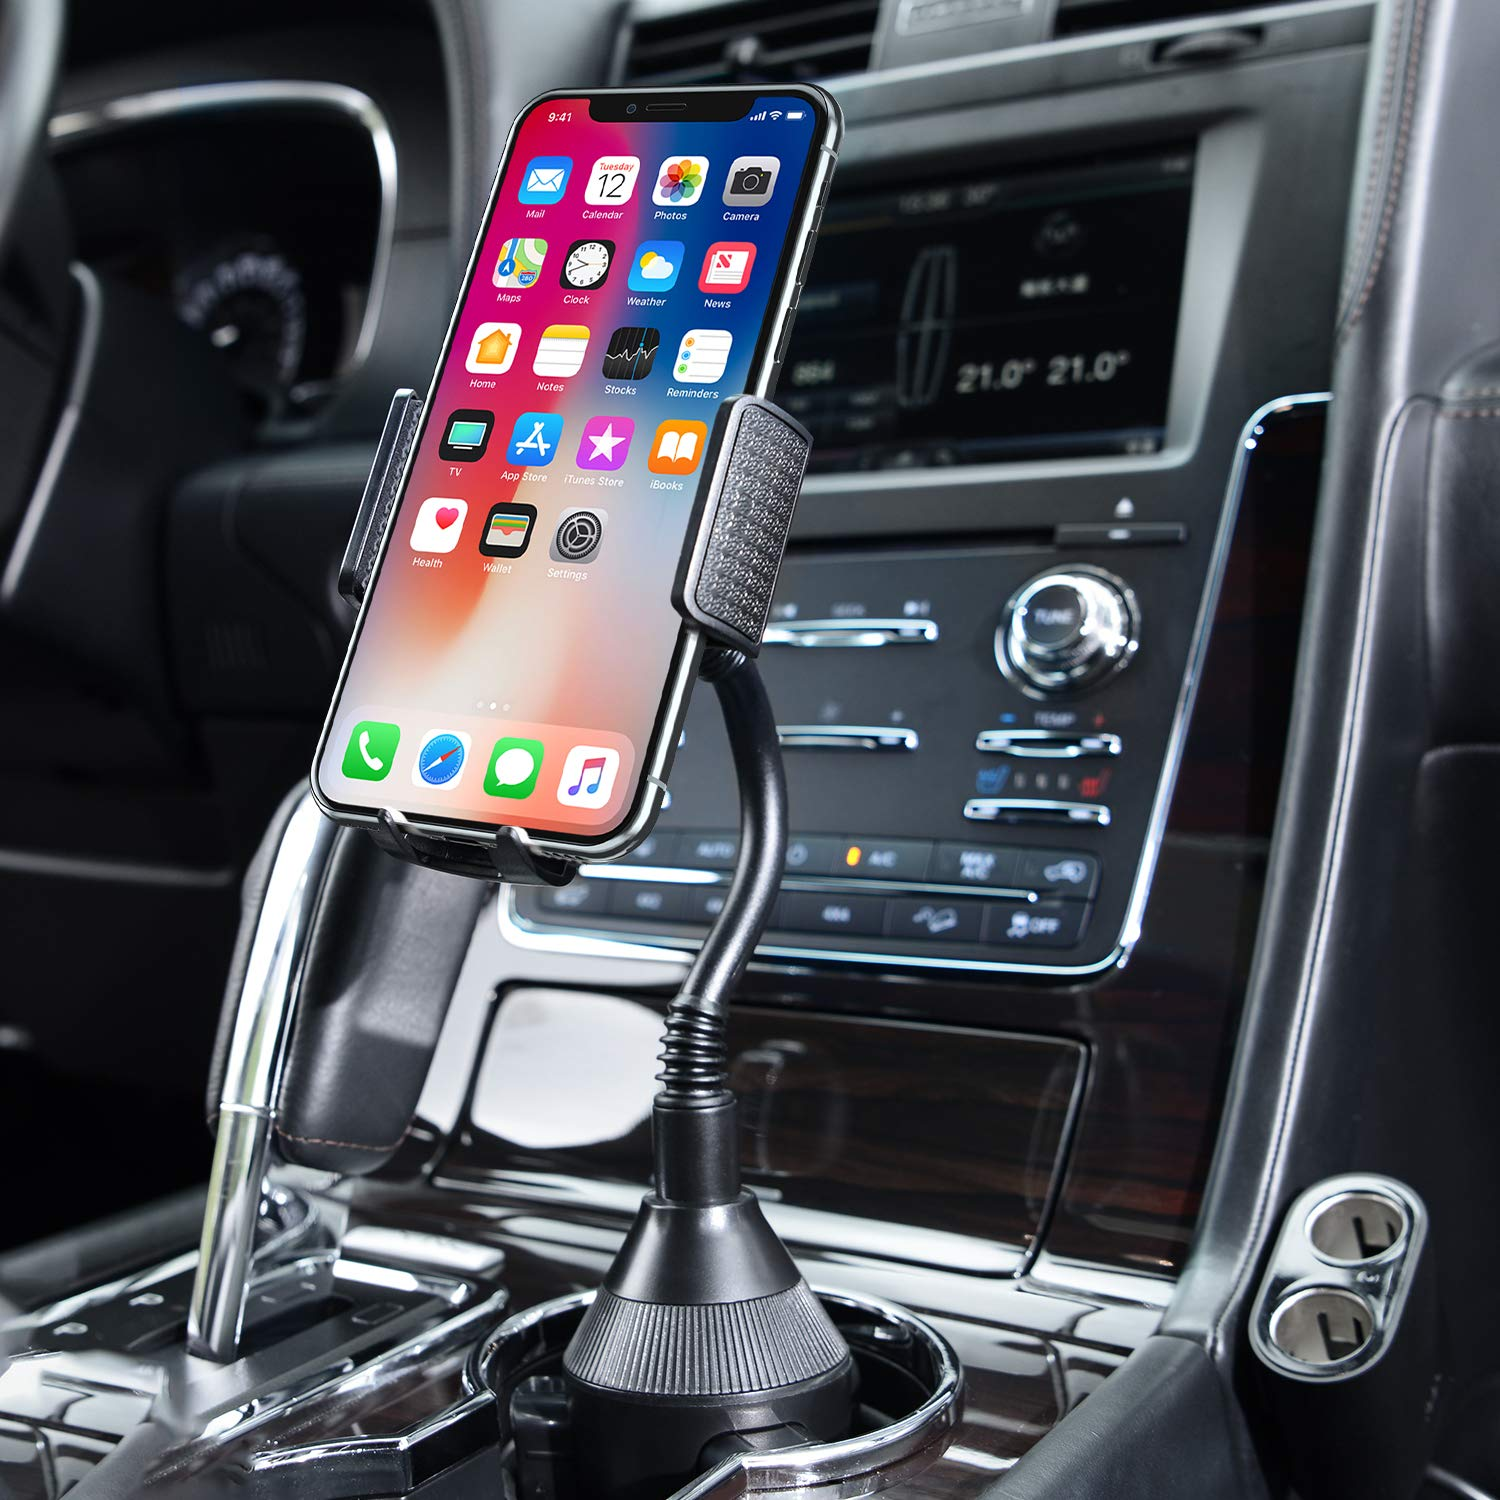 Amoner Car Cup Holder Phone Mount,Universal Cell Phone Holder Mount Cradle Compatible with iPhone Xs/Max/X/XR/ 8/8 Plus, Samsung Note 9/ S10+/ S9/ S9+/ S8 and Other 3.5-6.5 inch Smartphones by Amoner